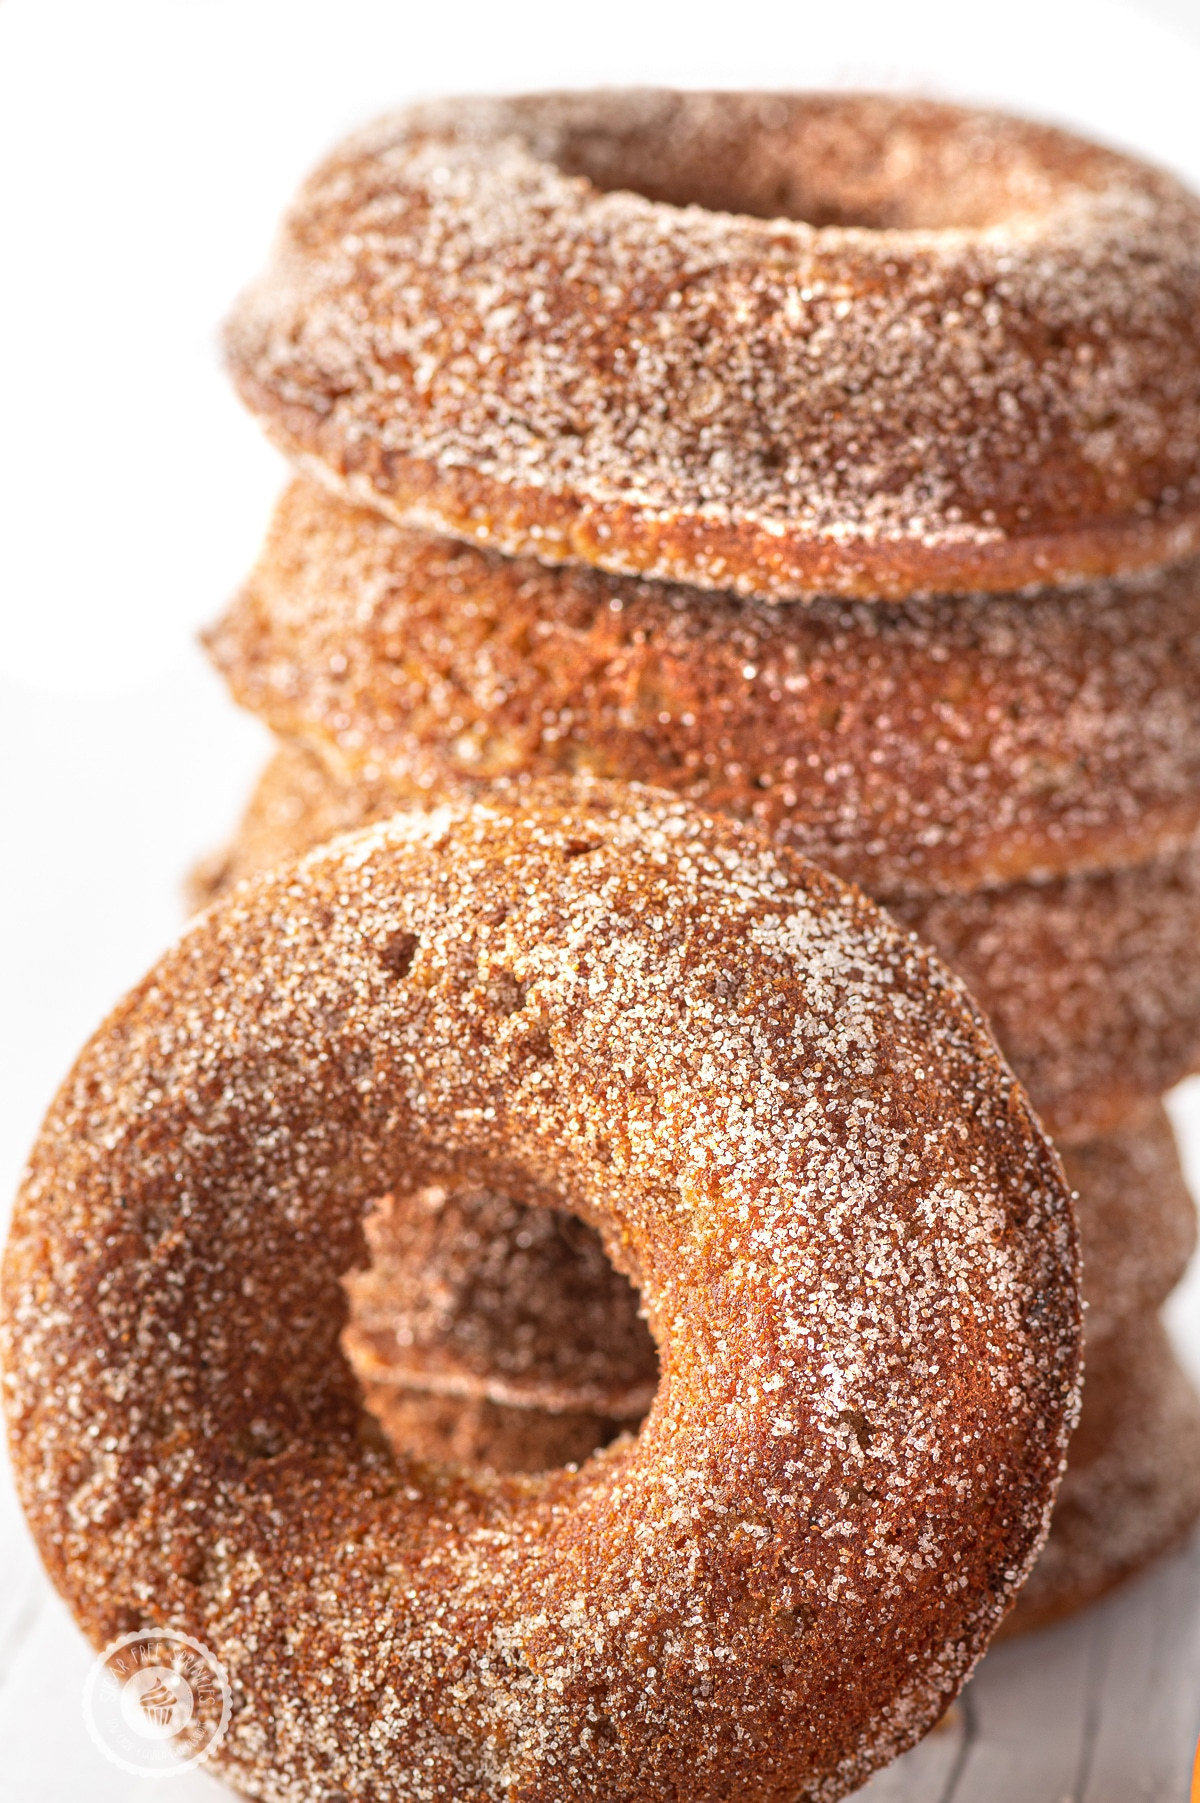 A stack of golden brown sugar coated keto pumpkin spice donuts against a bright white background.